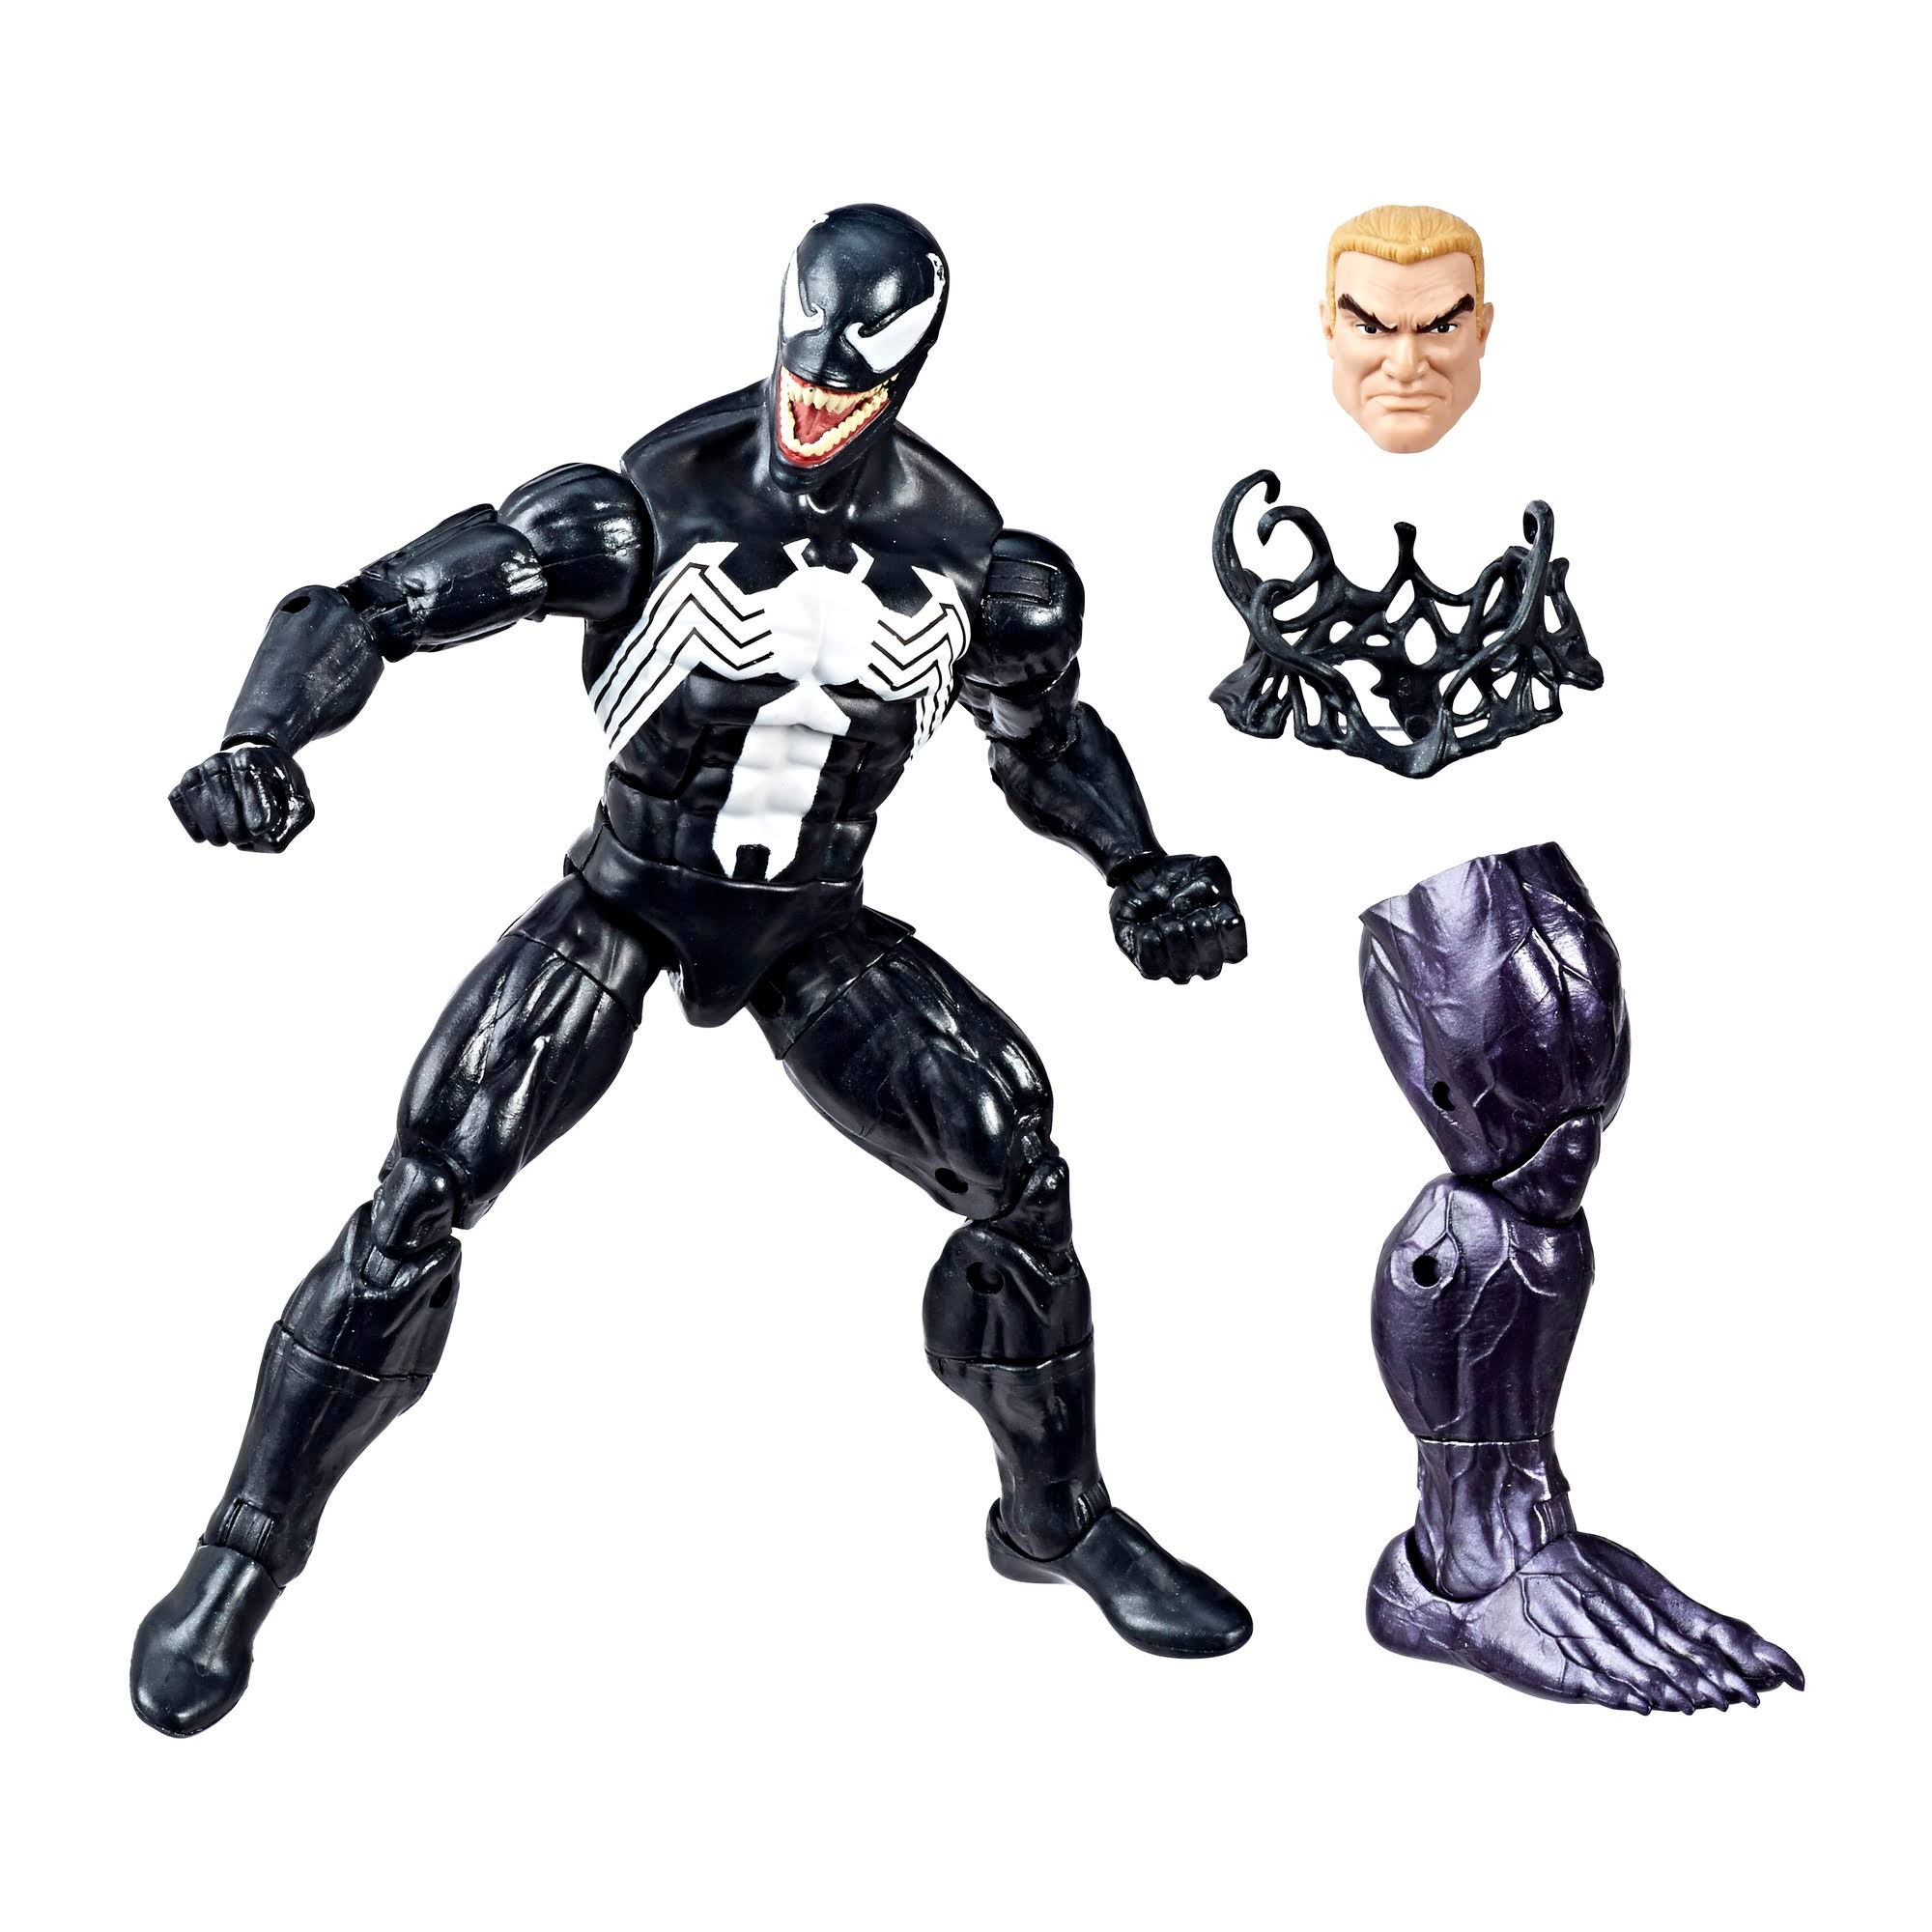 Hasbro Venom Marvel Legends Spider-man Monster Venom Action Figure